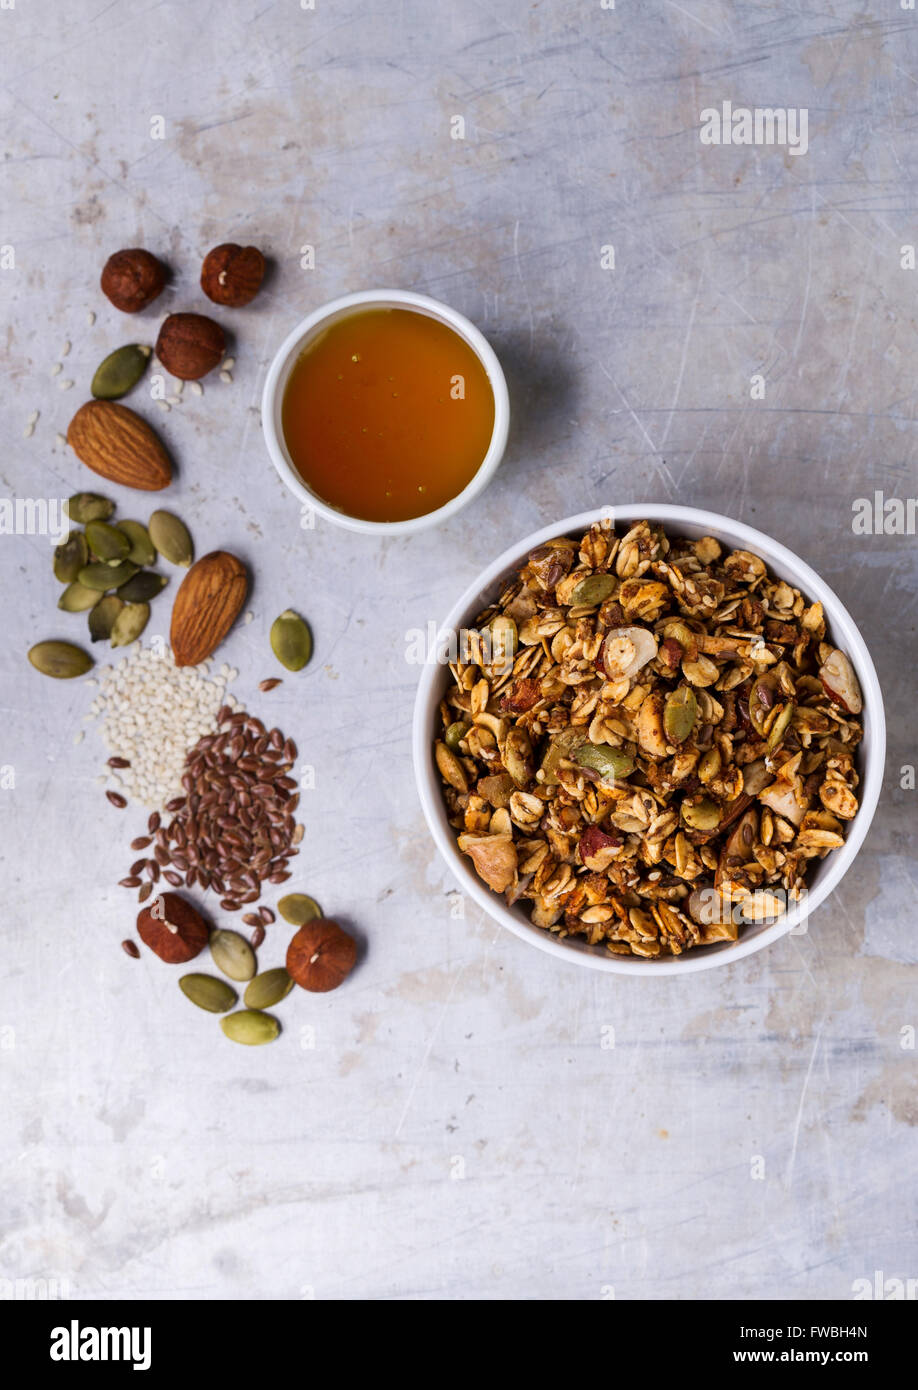 Homemade granola with honey shot from above - Stock Image